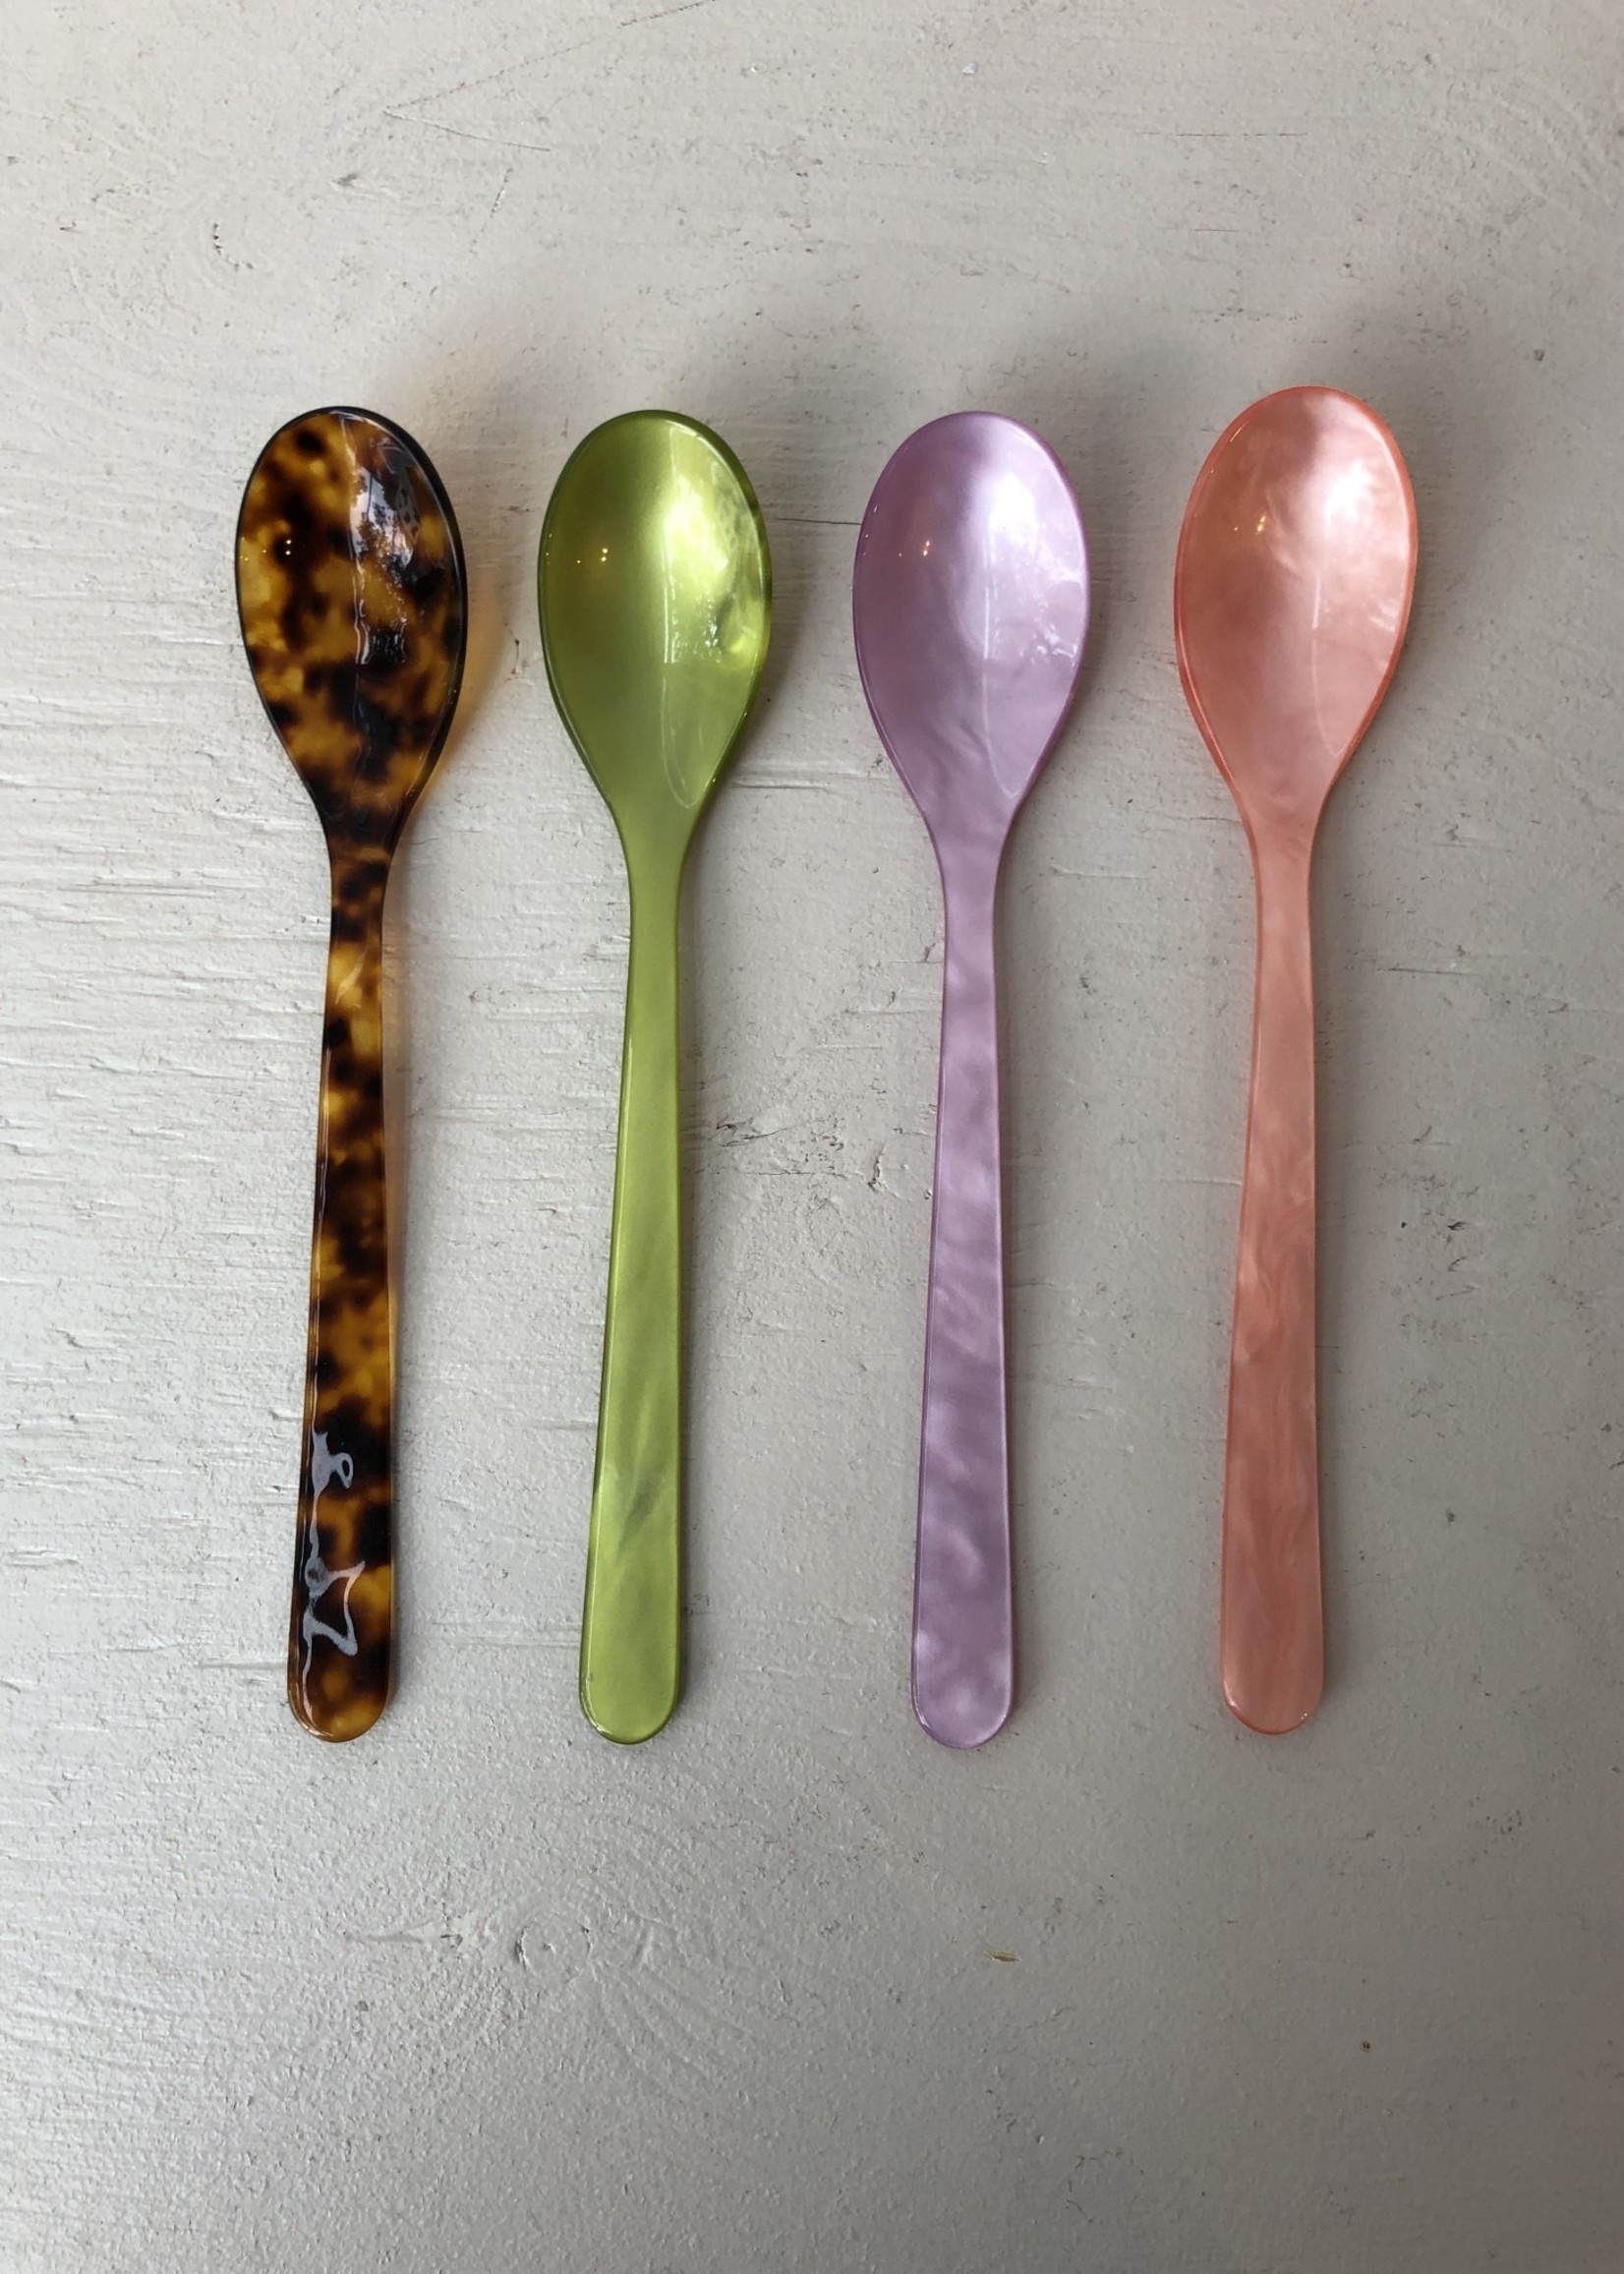 Heim Sohne Cereal Spoons by Heim Söhne